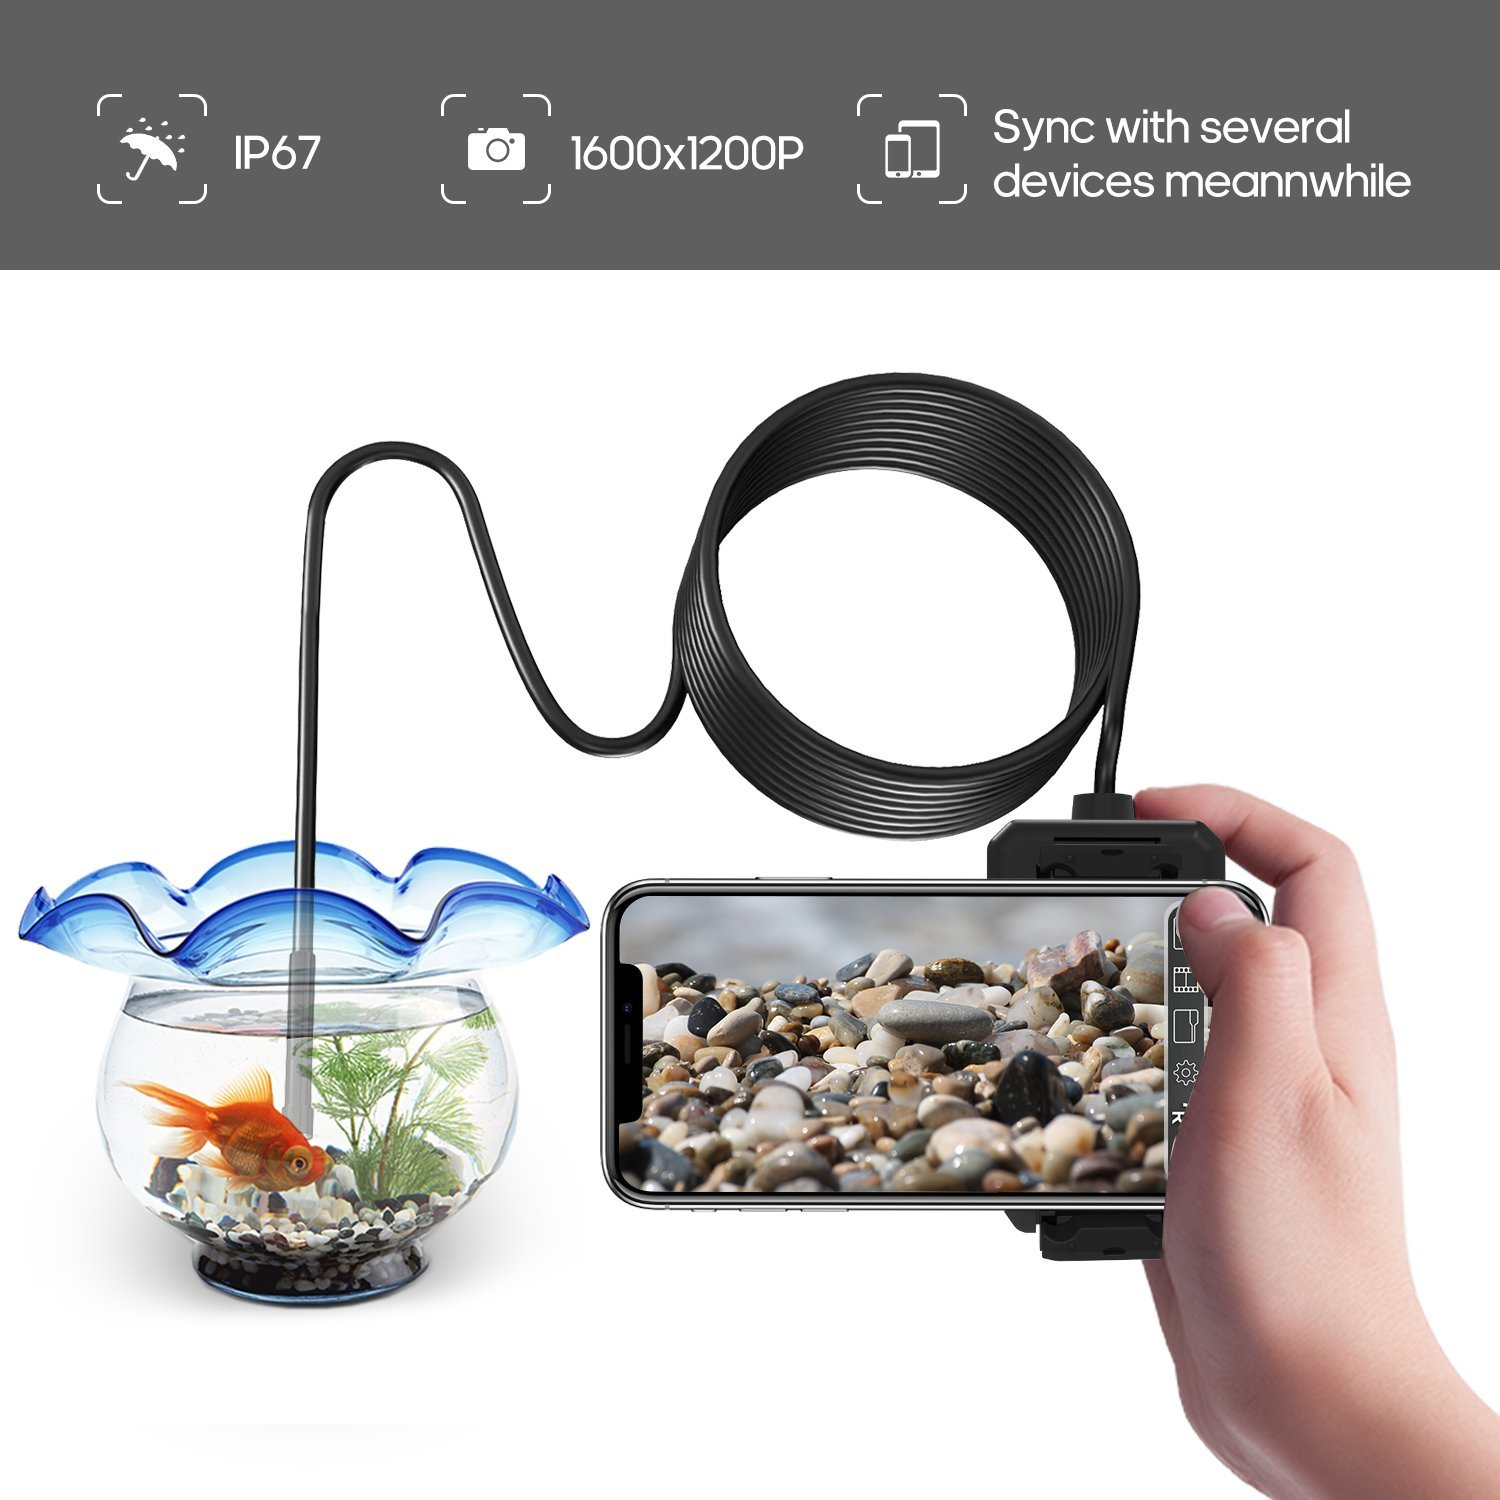 DEPSTECH 1200P Wireless Endoscope, 2.0 MP HD WiFi Borescope Inspection Camera, 16 inch Focal Distance Snake Camera with Phone Holder and Magical Claw for Android & iOS Smartphone Tablet by DEPSTECH (Image #2)